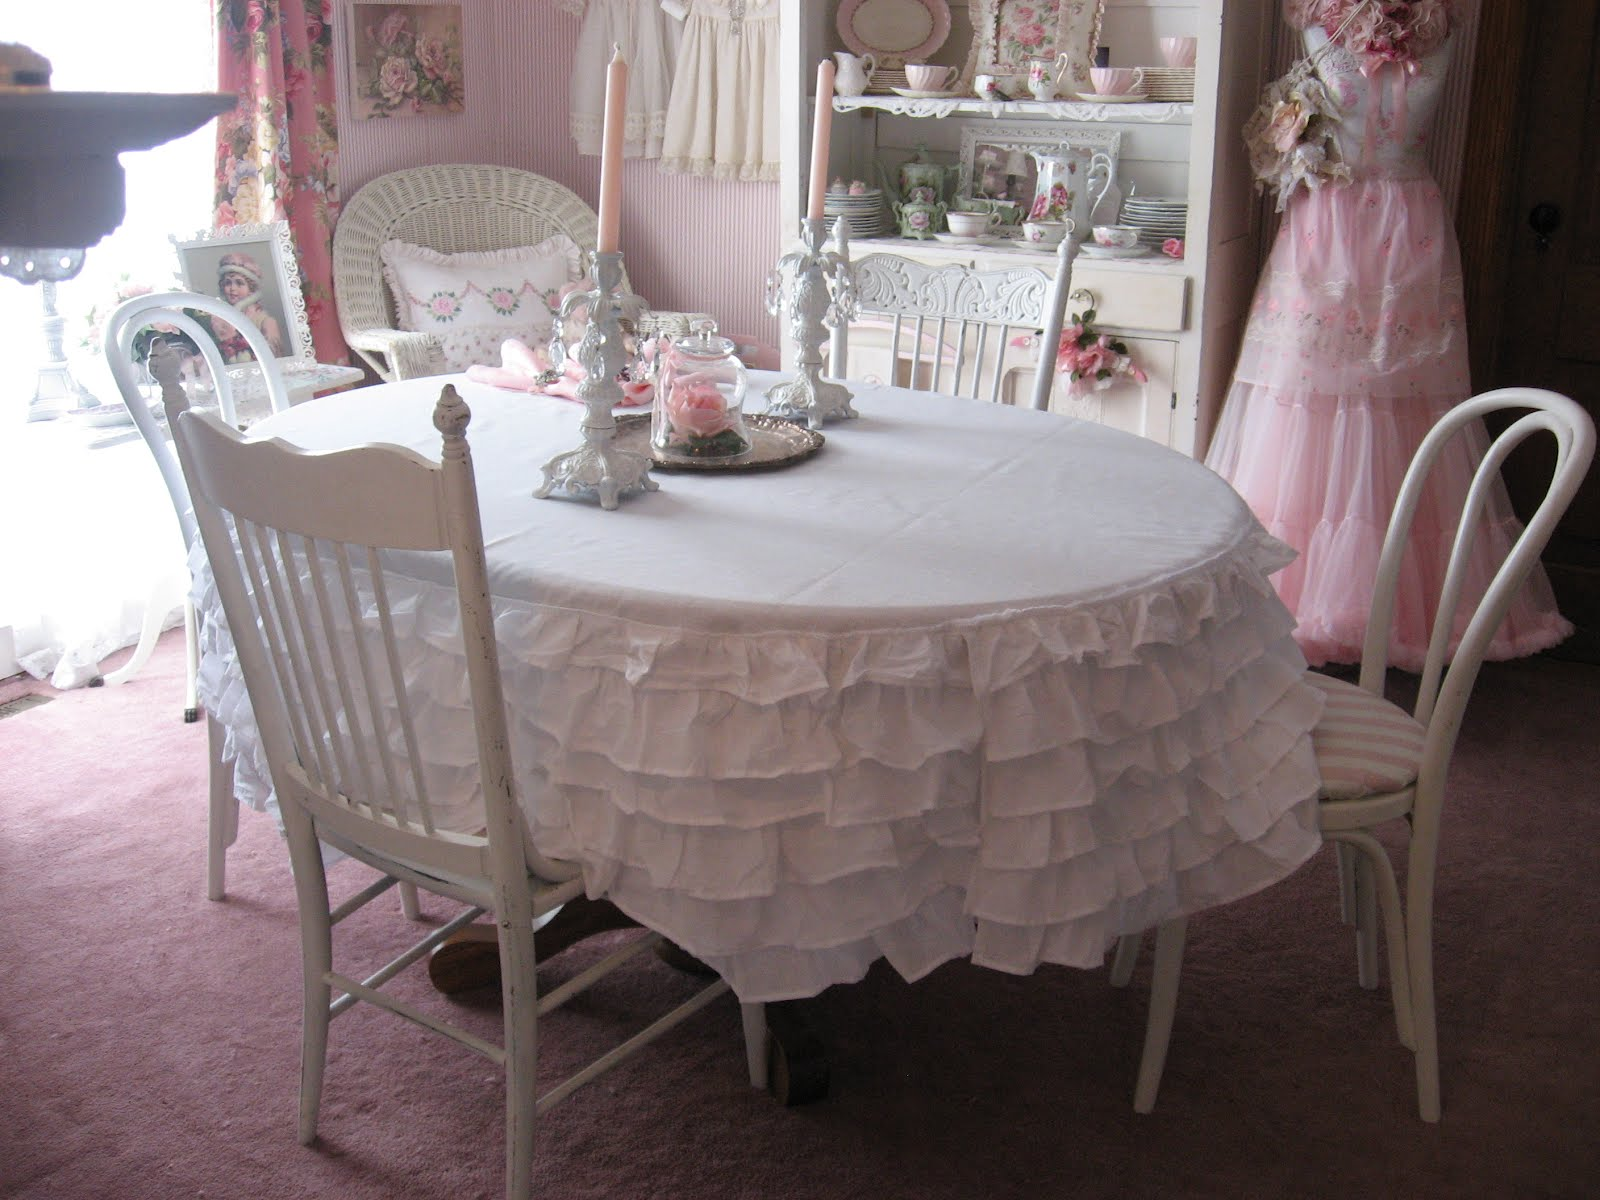 Captivating Ruffled Bedskirt Turned Tablecloth